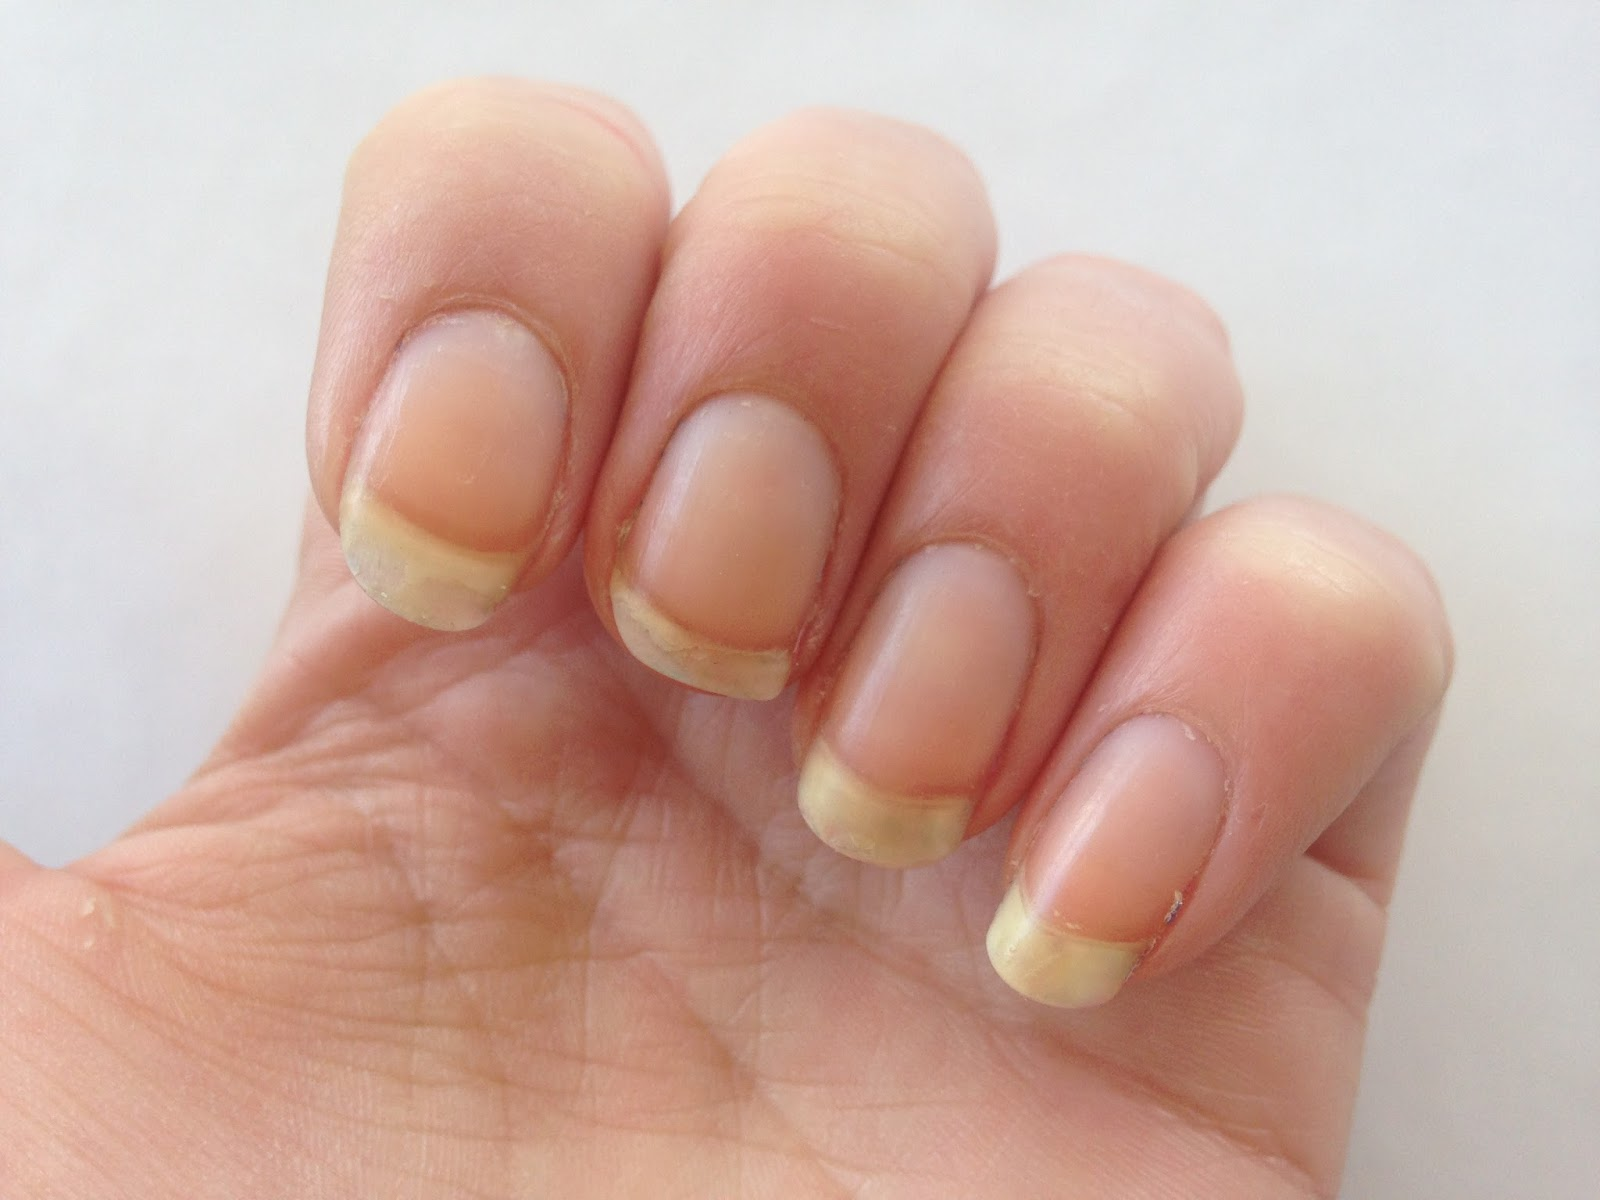 Blondie\'s Nails: Cuticle Oil & Nail Growth